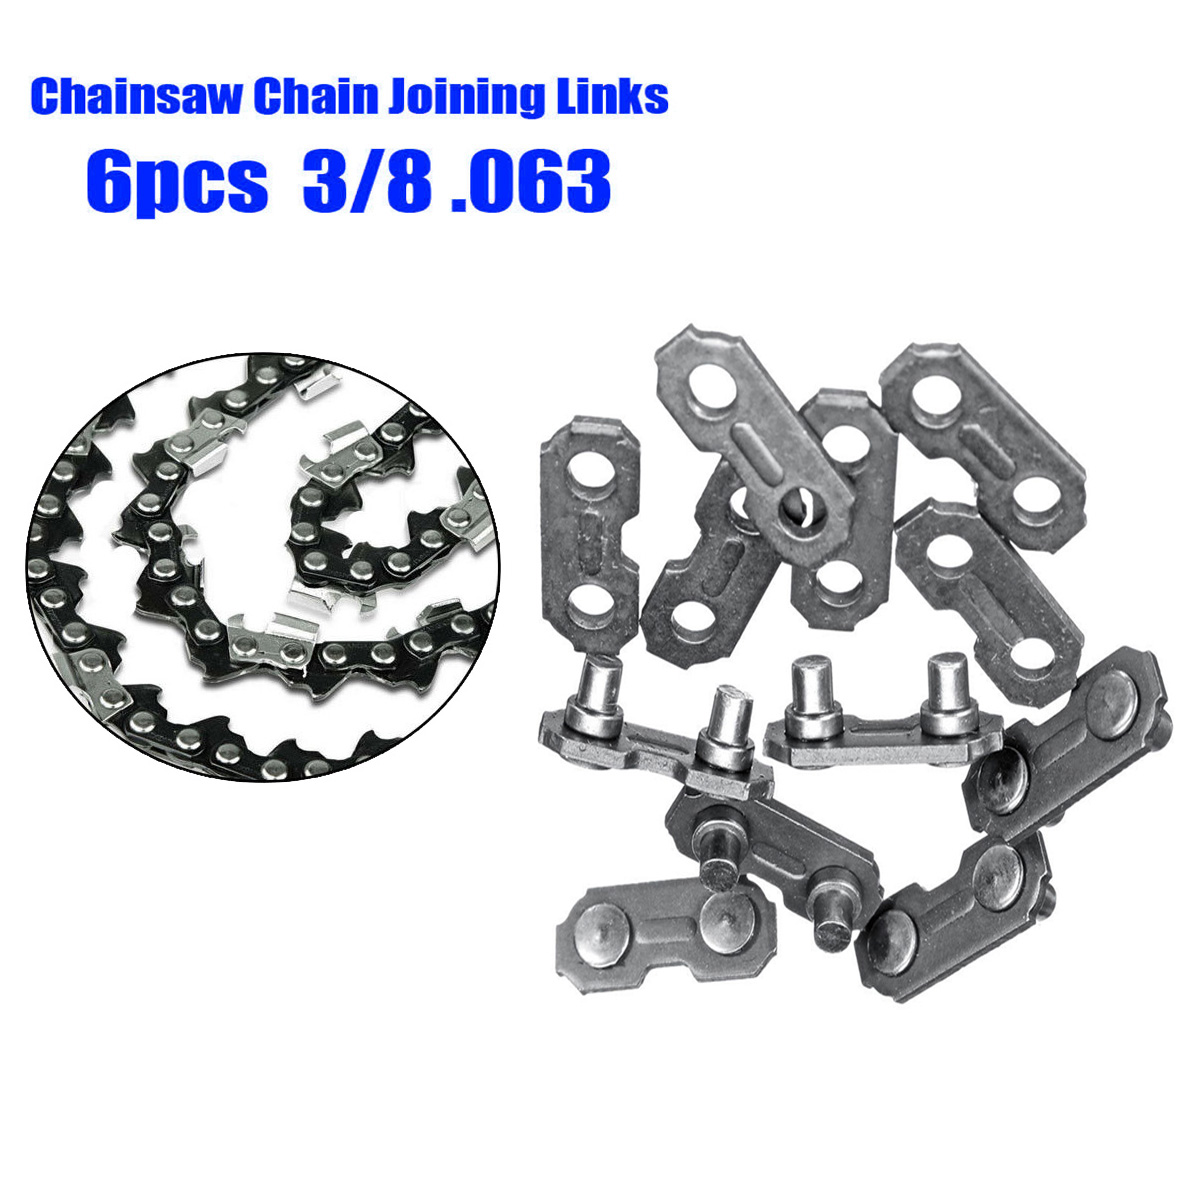 Metal Link Joining Part Tools Replacement 6pcs 3//8 0.063 Steel Chainsaw Chain